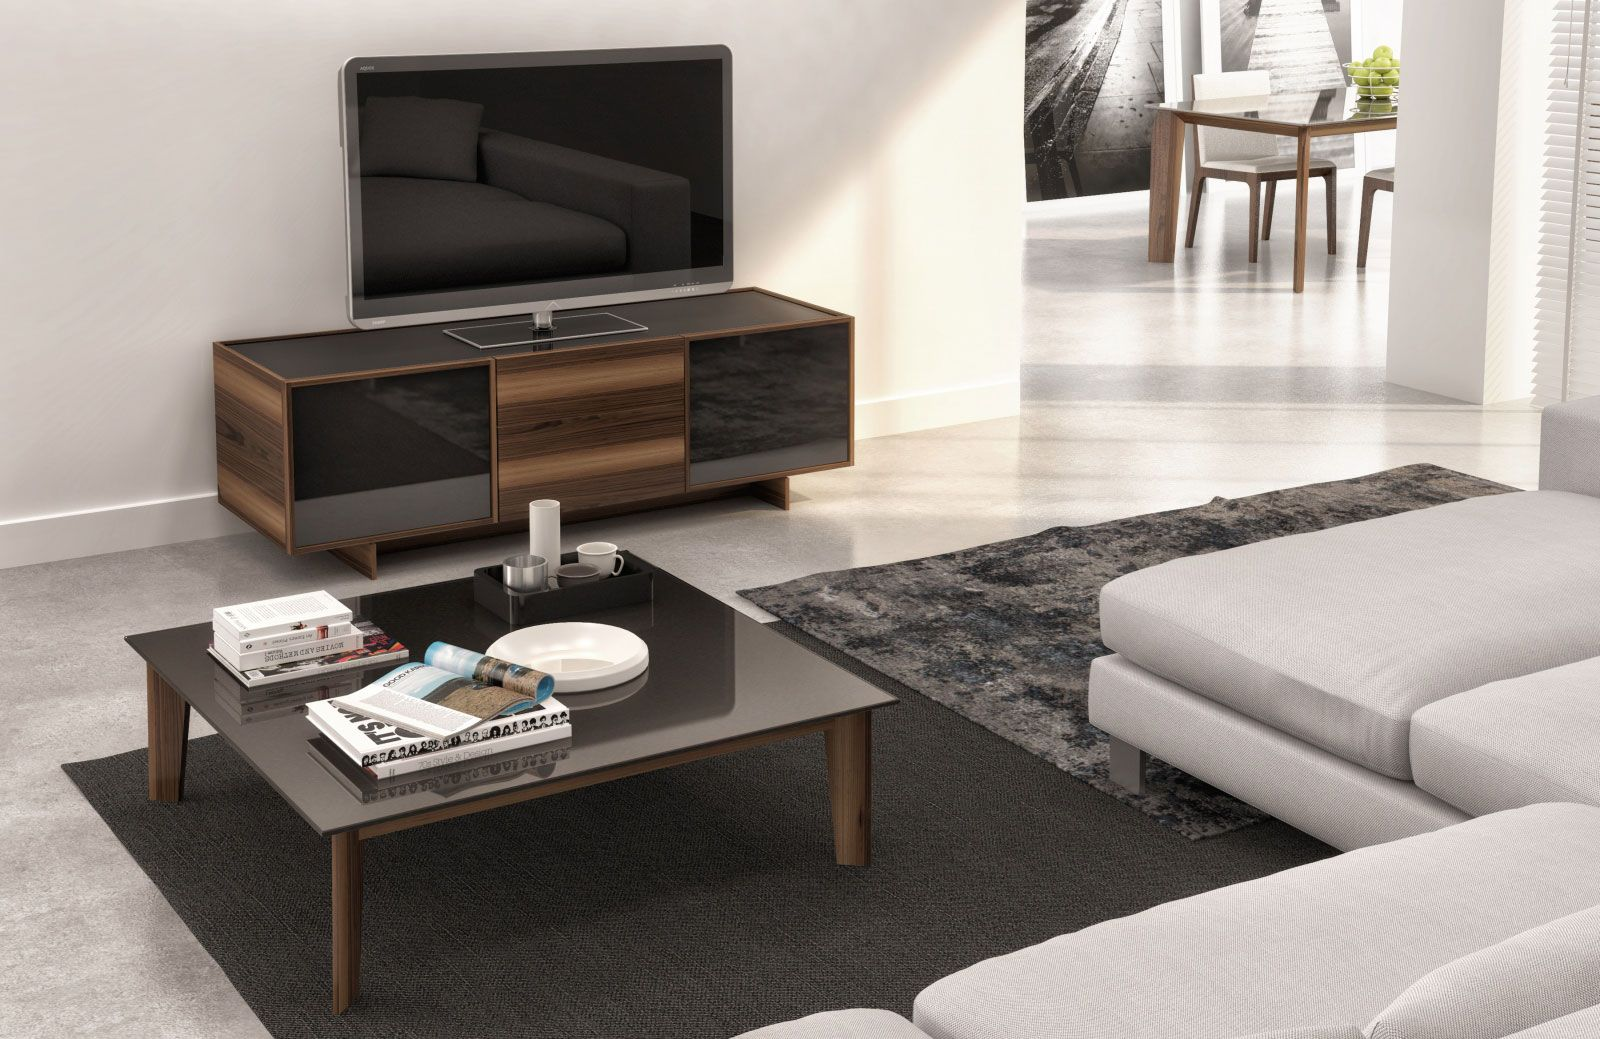 Up Living Origin Collection Furniture Manufacturer Contemporary Huppe Net Coffee Table Coffee Table And Tv Unit Contemporary Furniture Design [ 1039 x 1600 Pixel ]